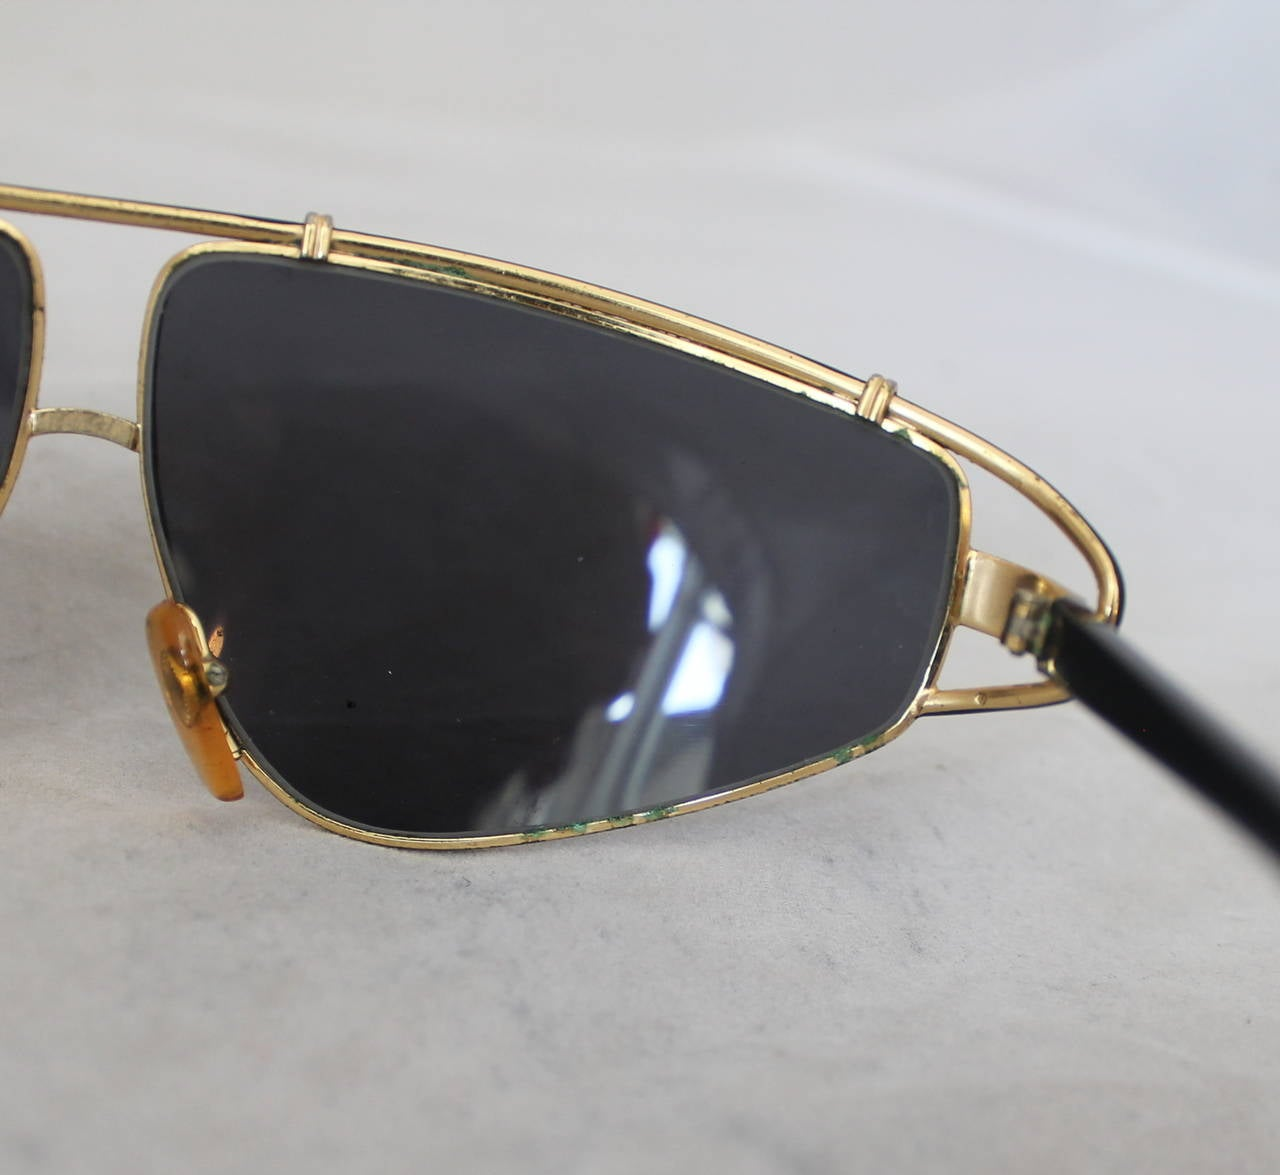 Versace 1980's Vintage Black & Gold Geometric Aviator Sunglasses 4